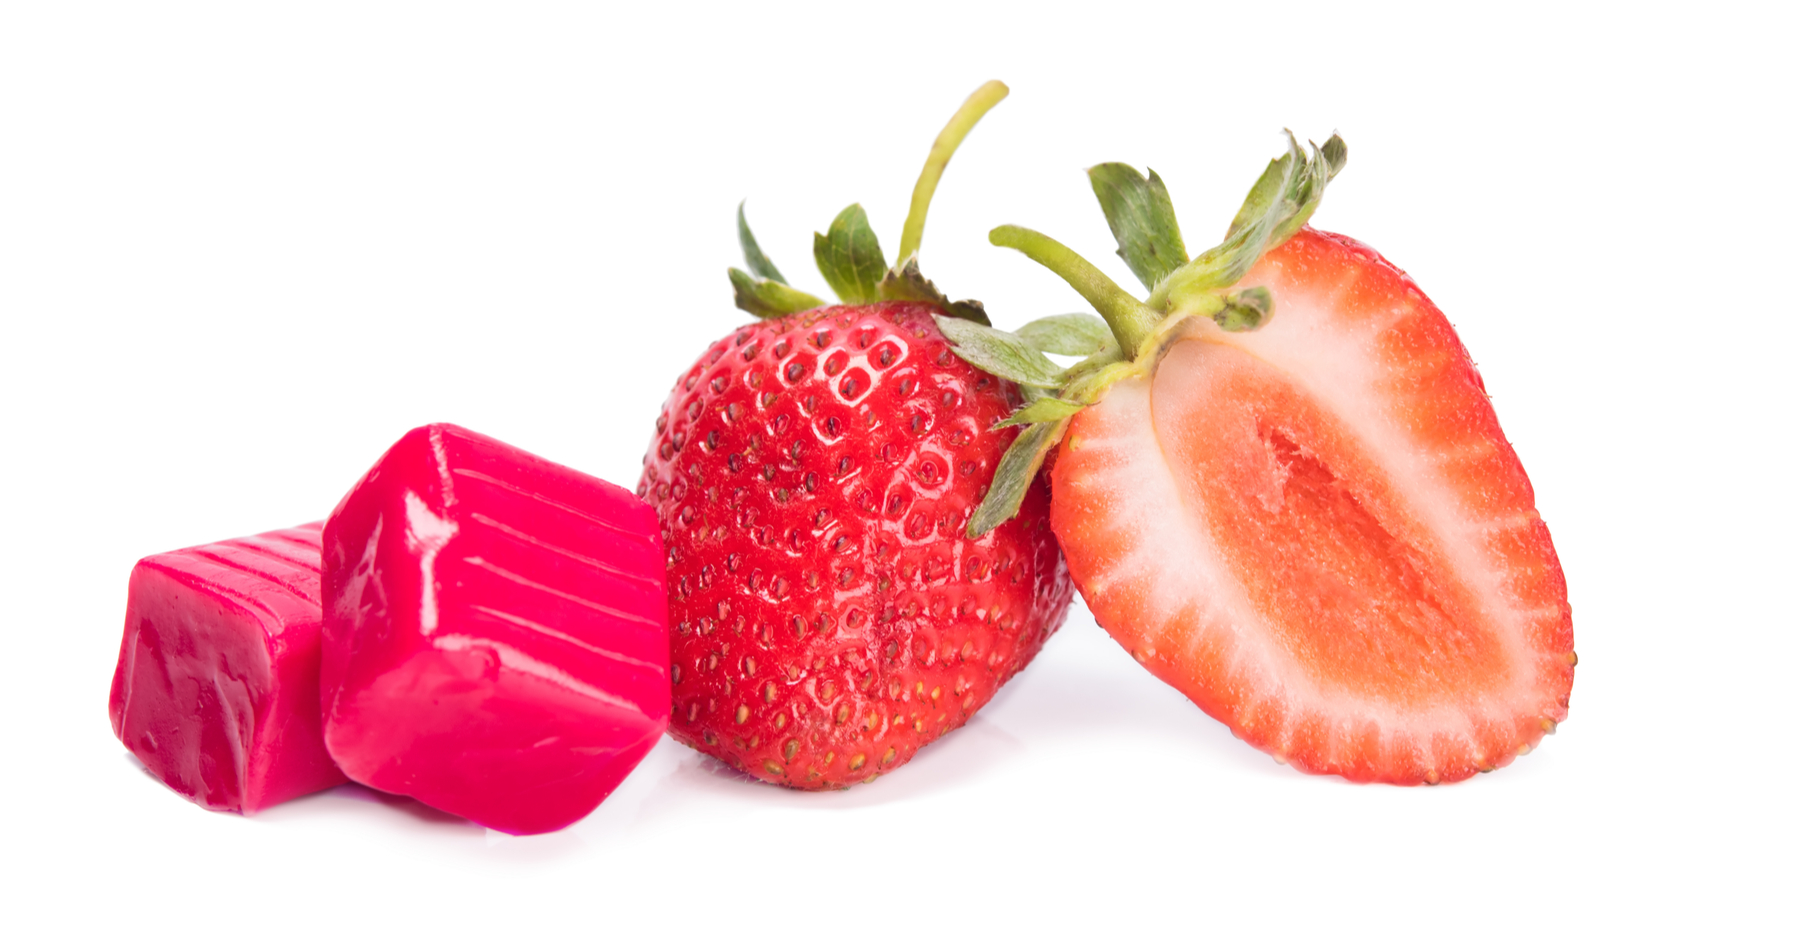 Strawberry-flavored candy